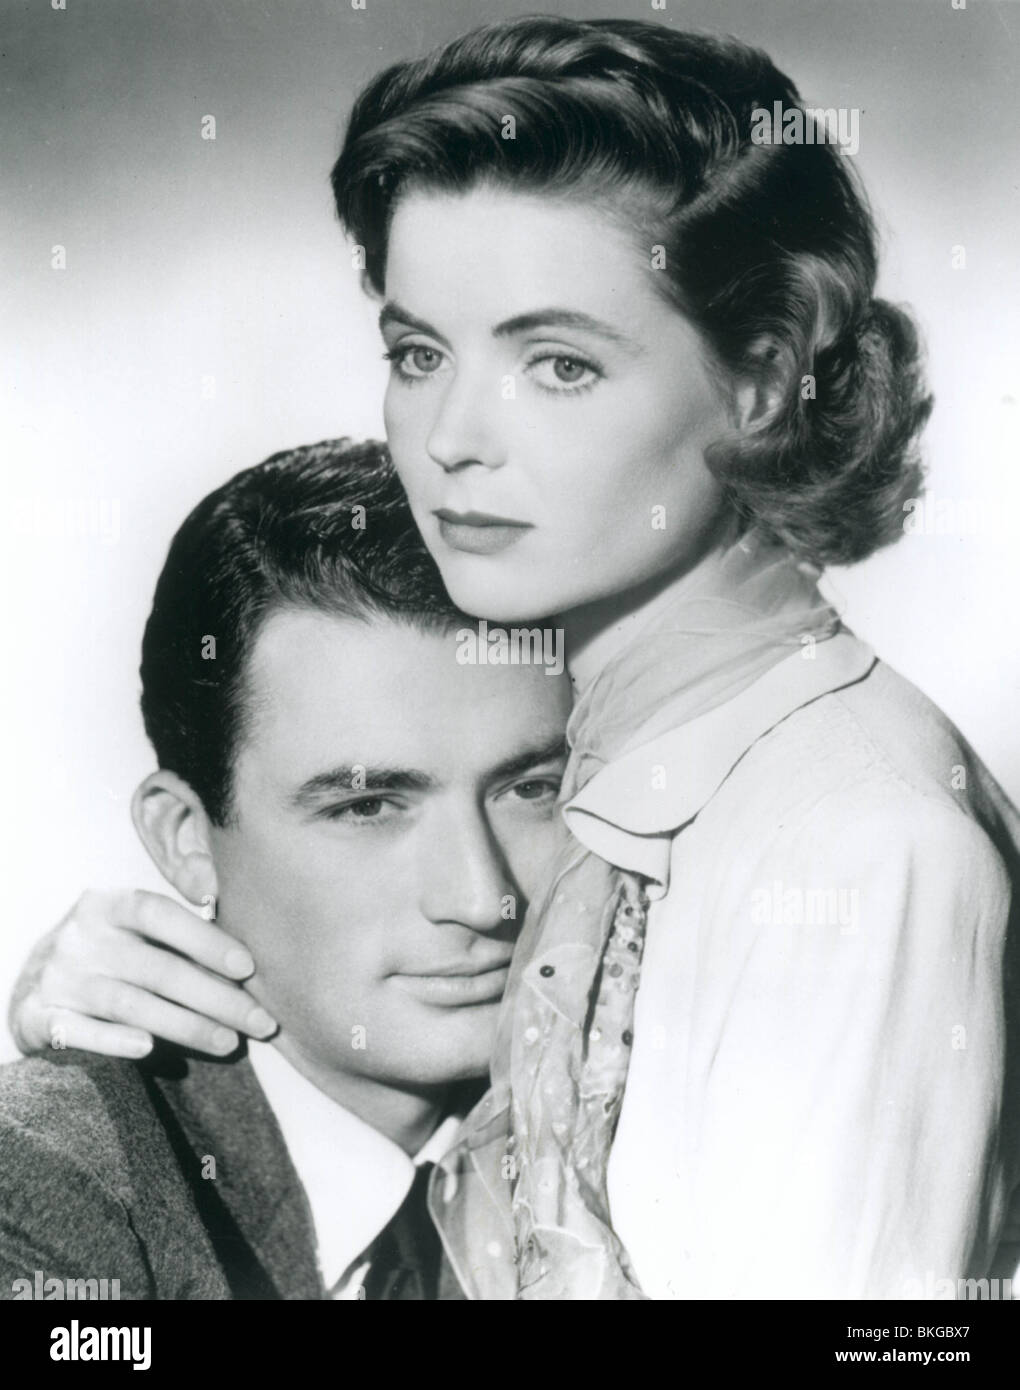 dorothy mcguire films